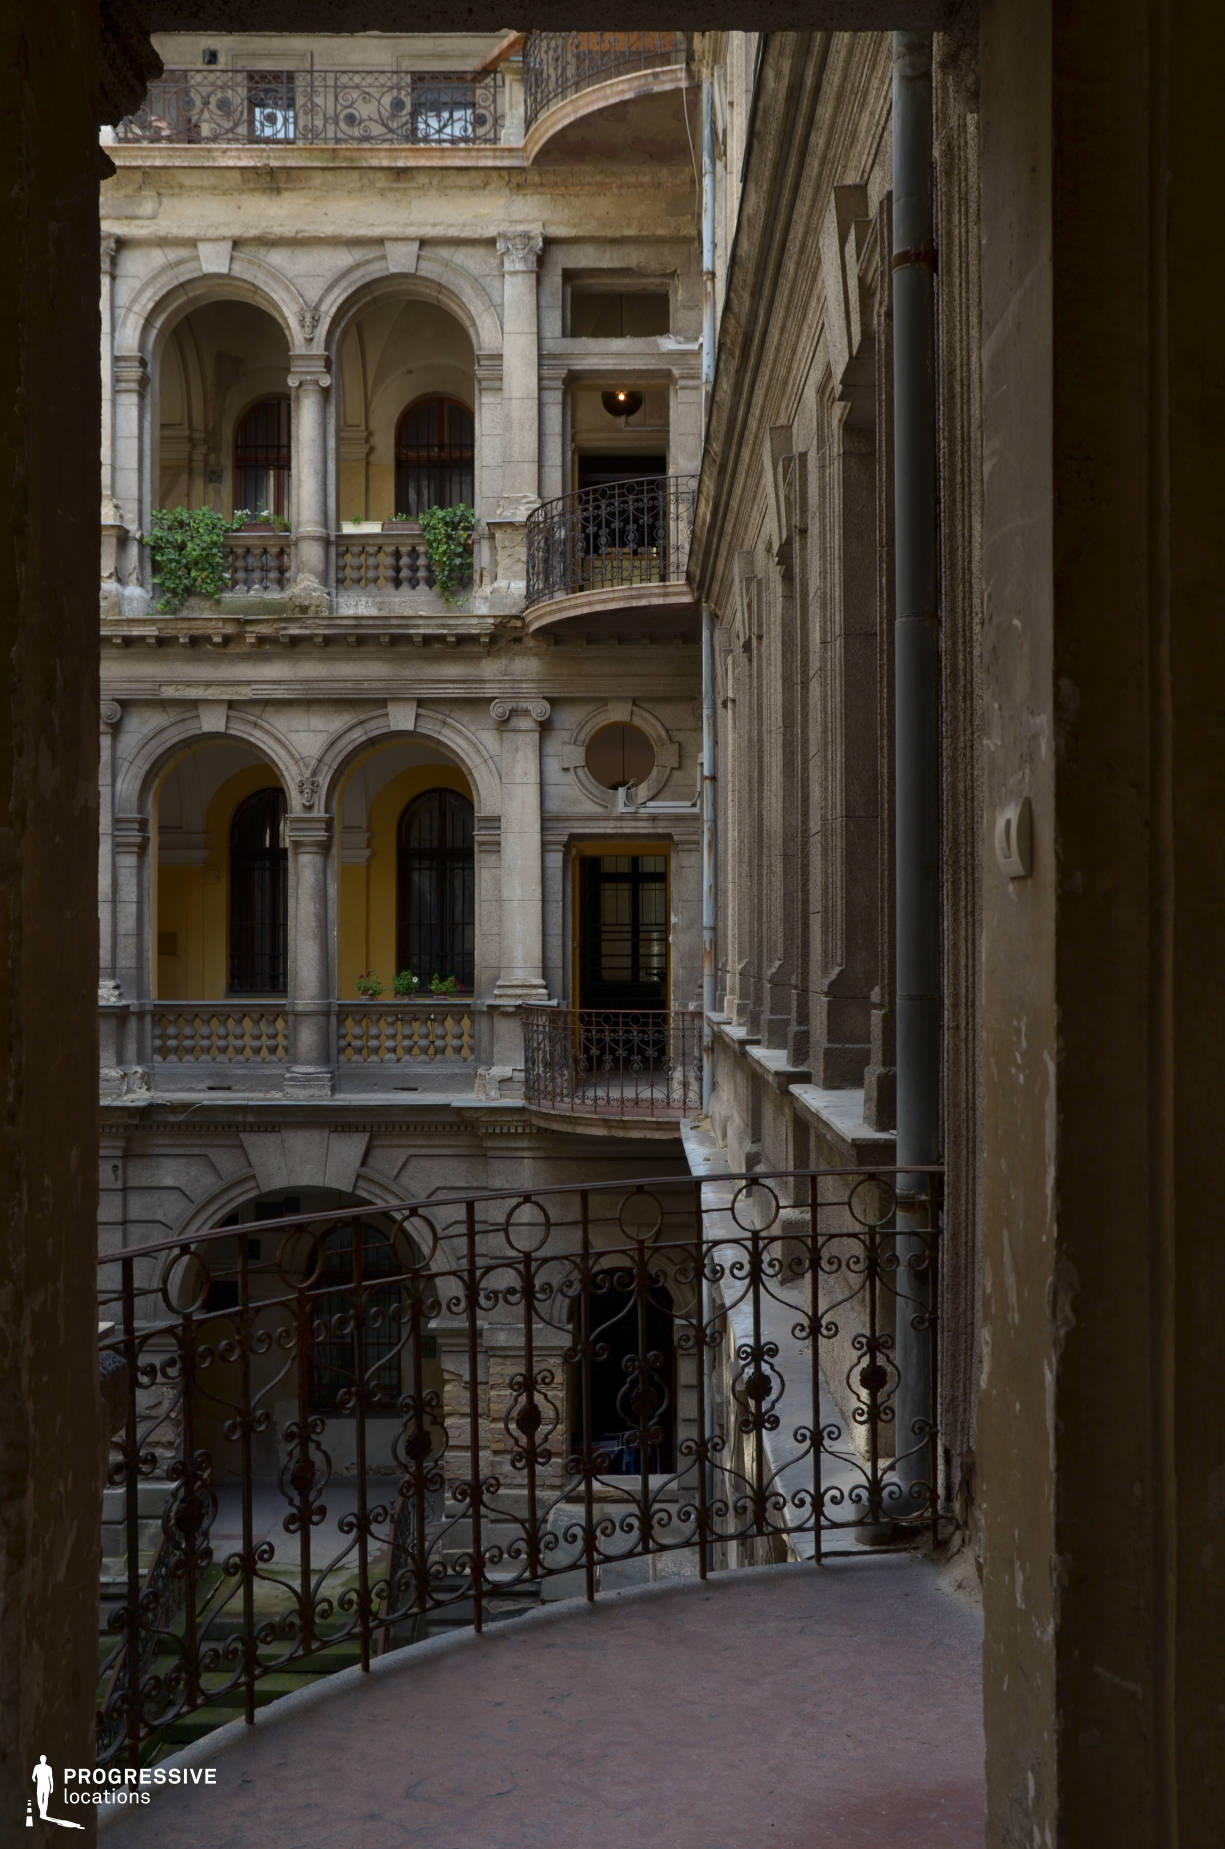 Locations in Budapest: Andrassy Street Courtyard (Spot)